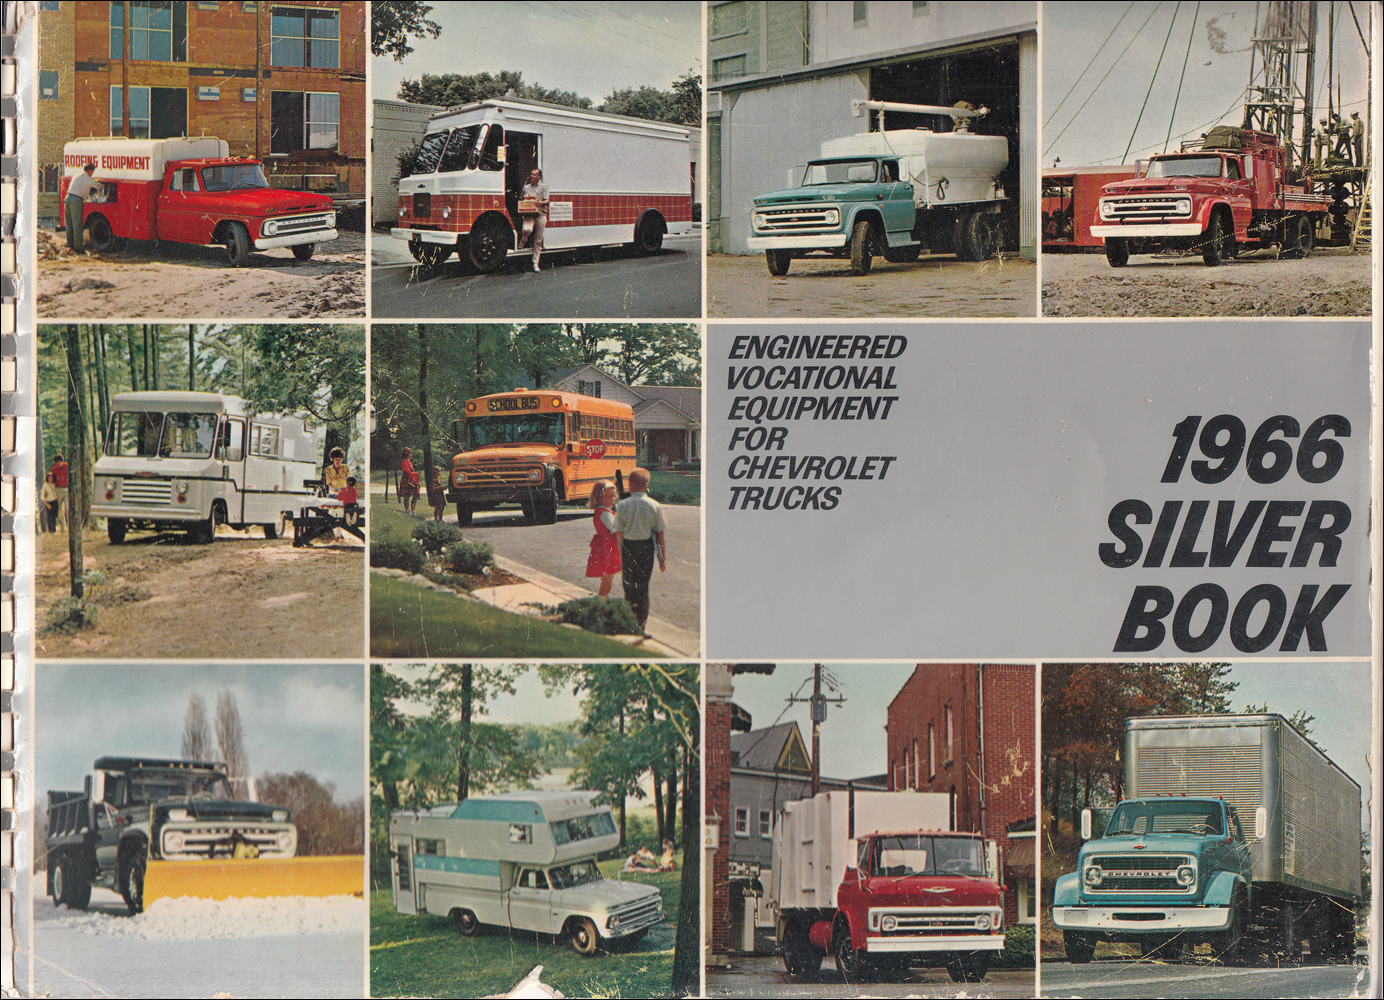 1966 Chevrolet Truck Silver Book Special Equipment Dealer Album